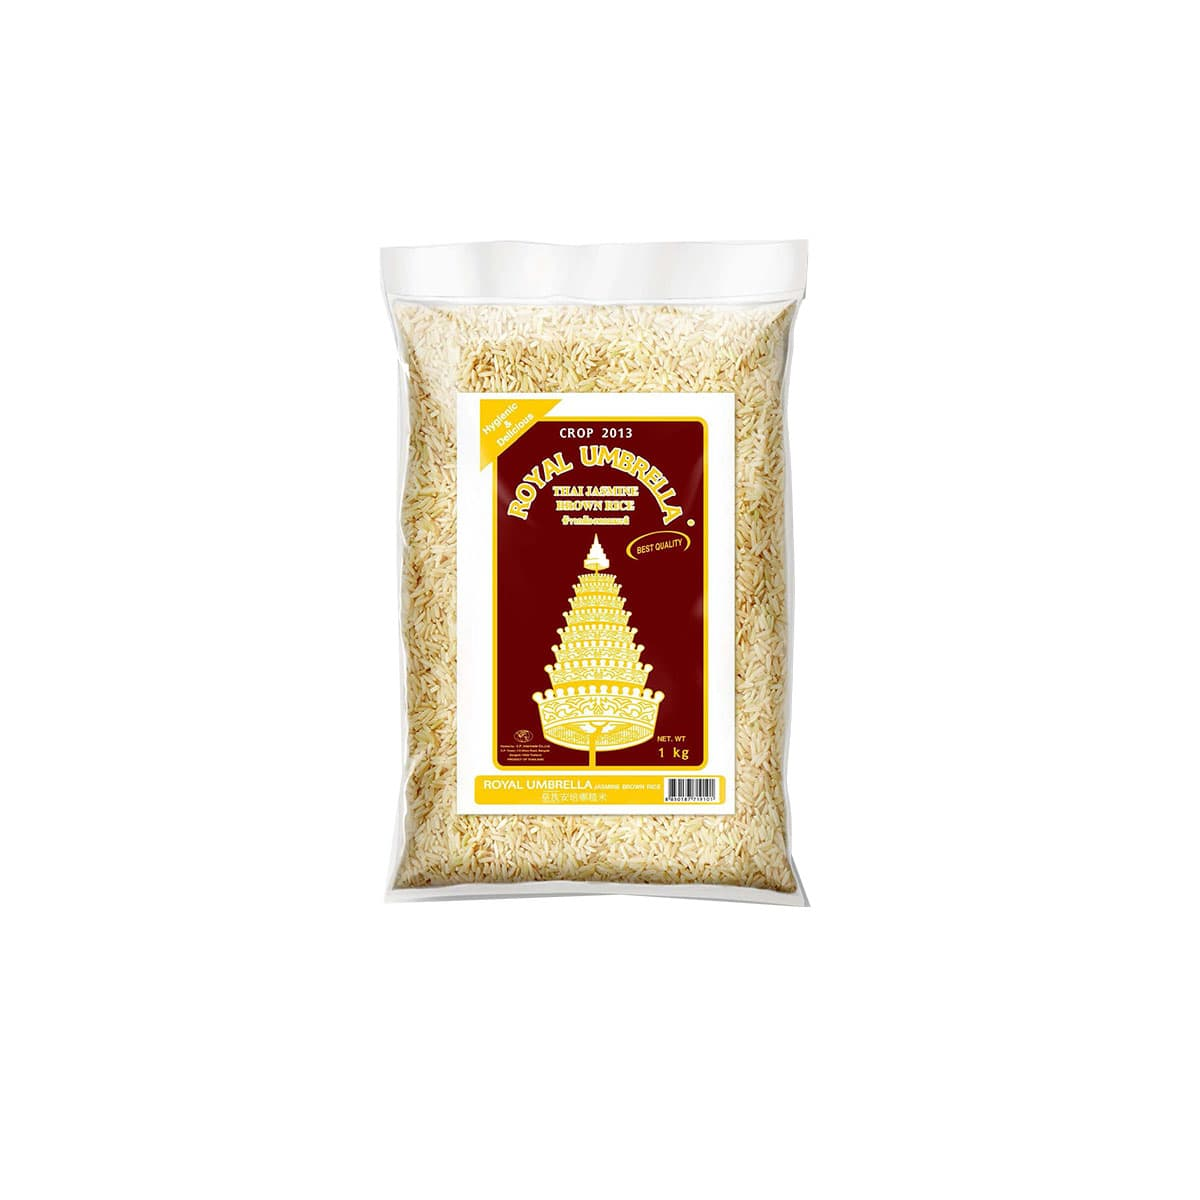 Riso integrale lungo b jasmin 1kg di Royal umbrella